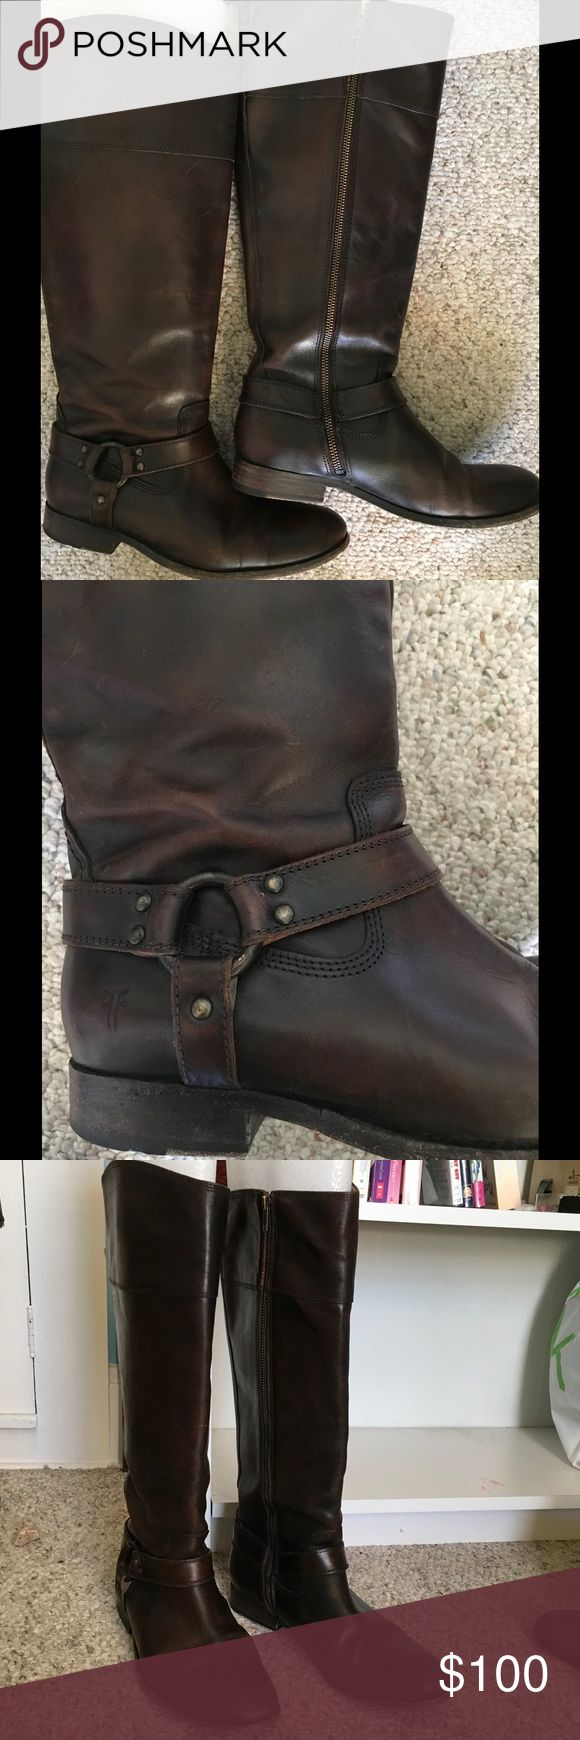 Frye riding boots size 10 Frye brown knee high Phillip Harness riding boot size 10 wide calf. Worn a handful of times over 2 years. Excellent condition. This is a beautiful pair! Frye Shoes